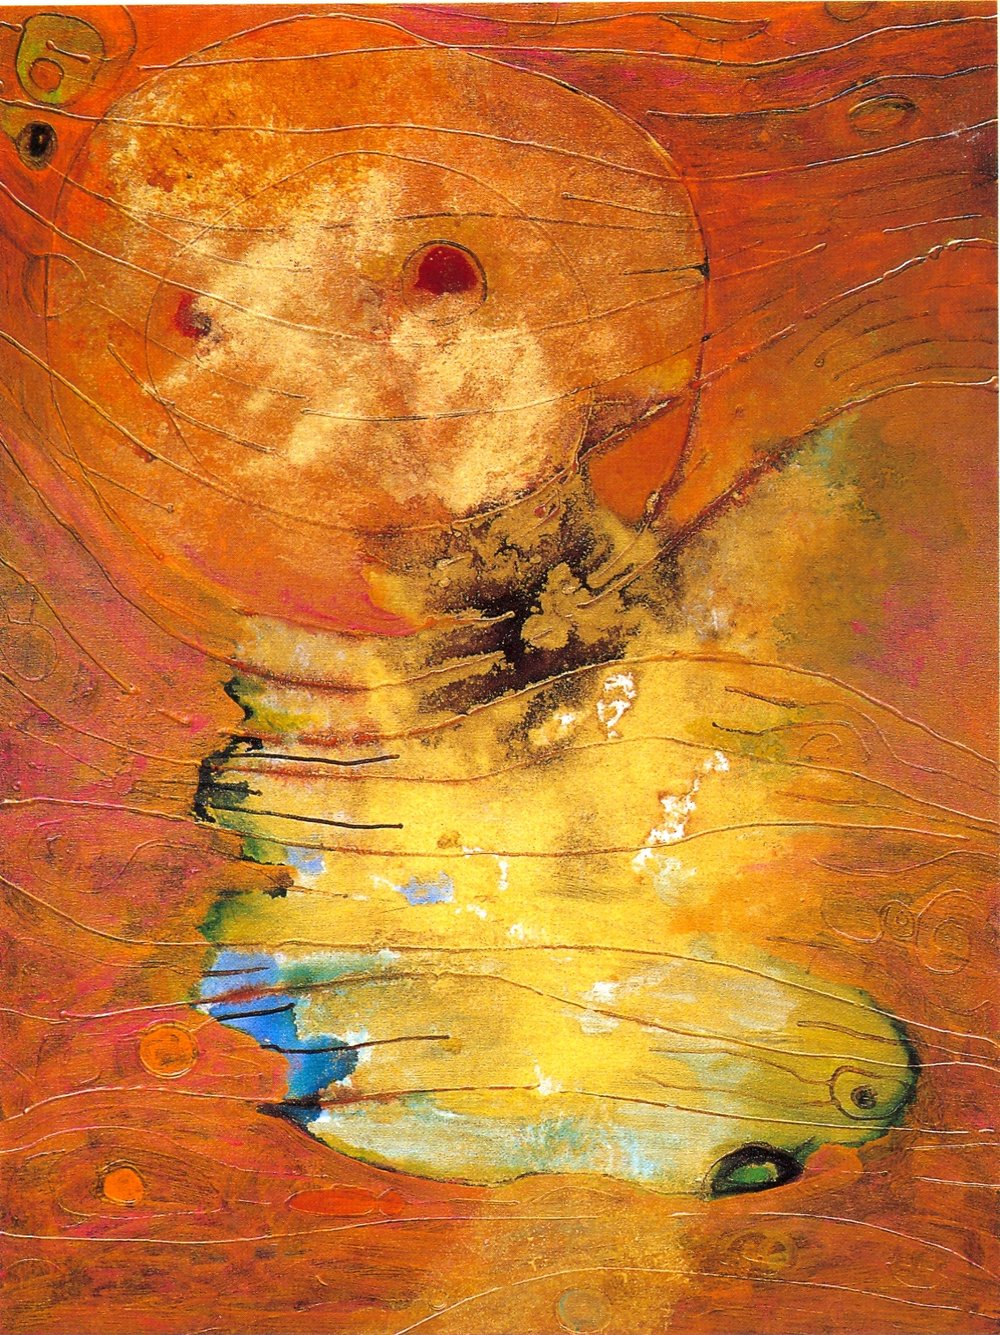 "Fran Bull,   Shekhinah,   2002, Acrylic & Mixed Media on Canvas, 48 1/4"" x 36"""